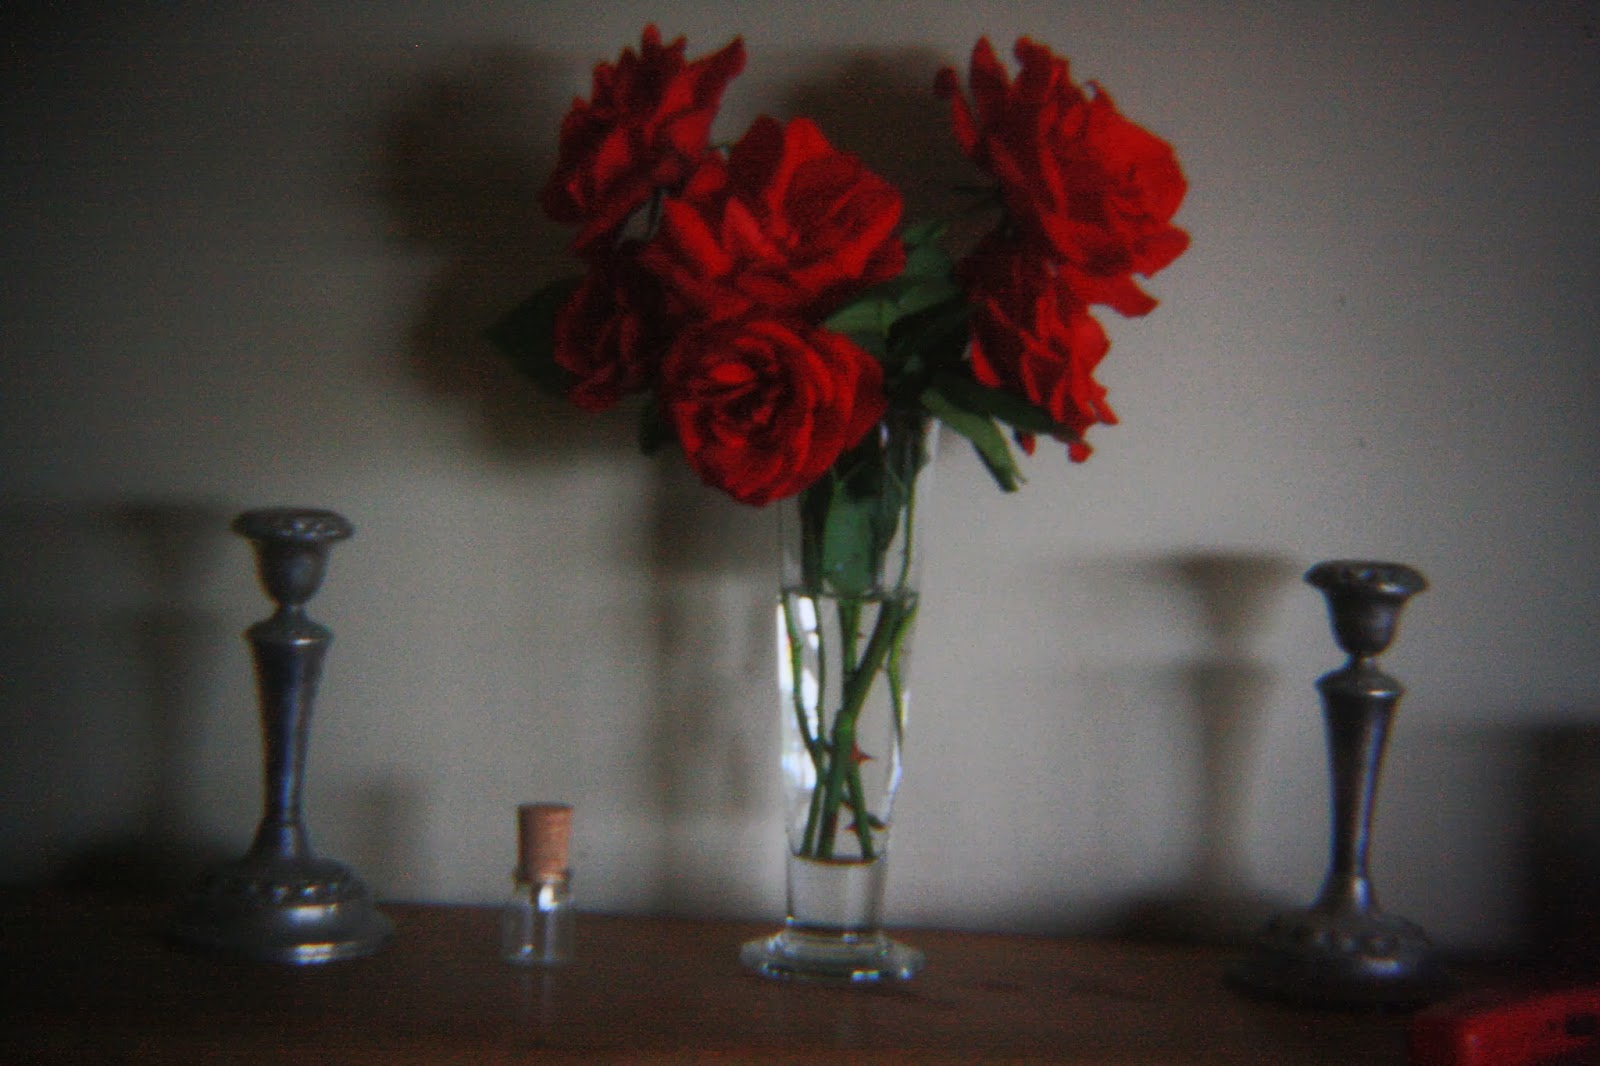 Red roses on a mantle piece.